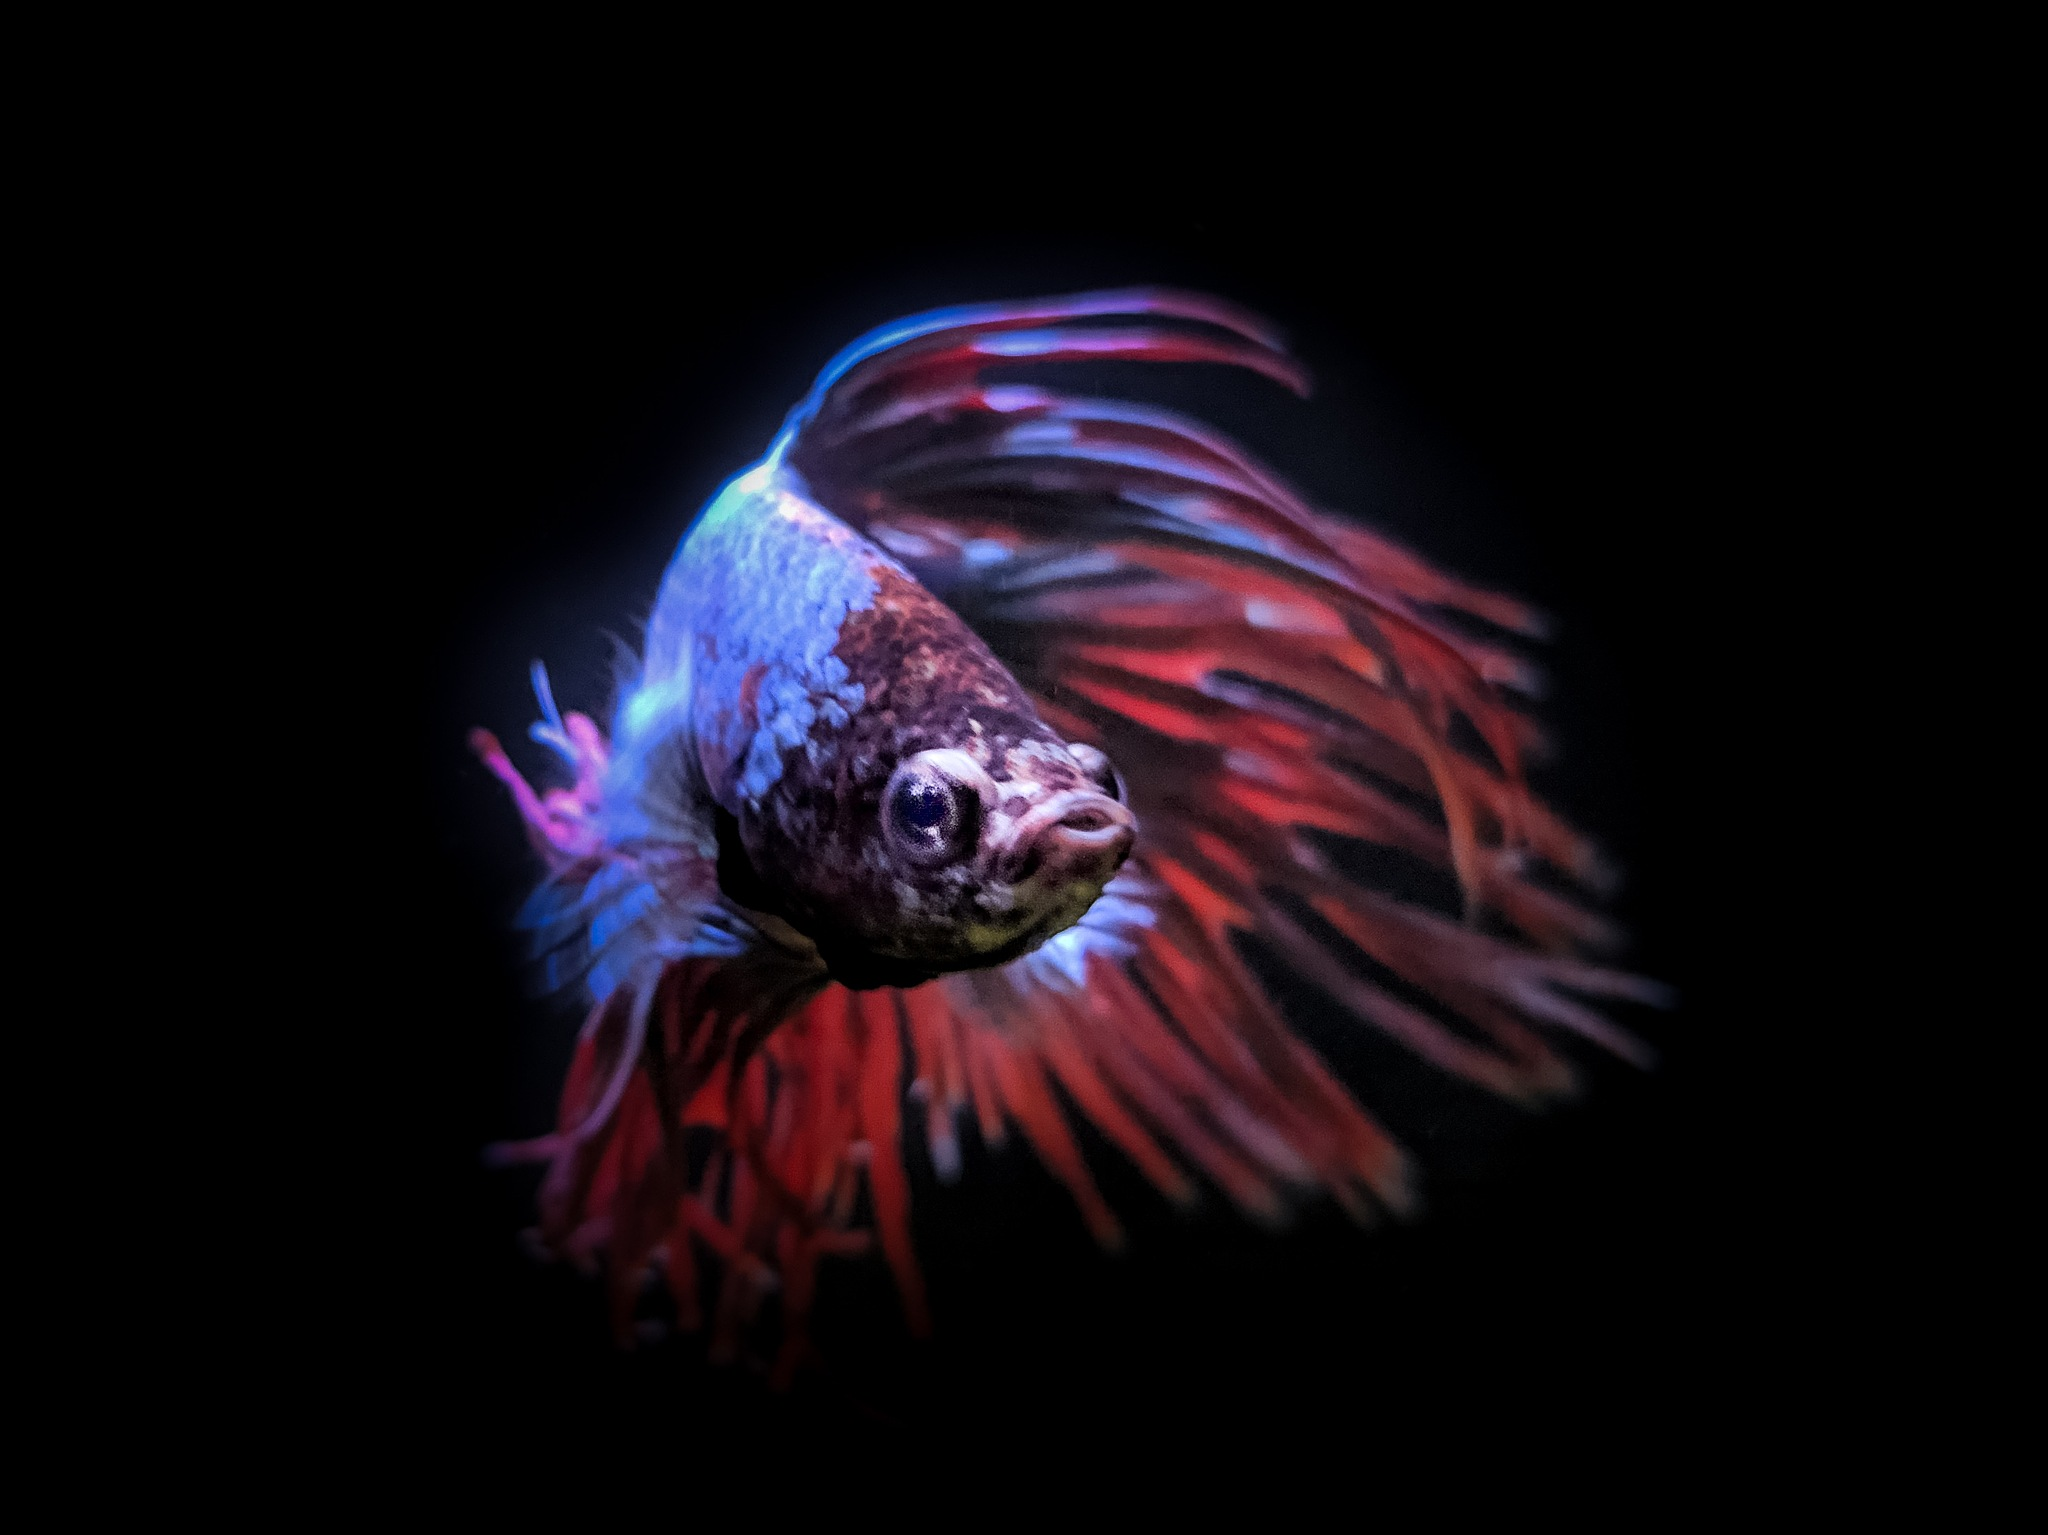 Betta by Gary Tripp